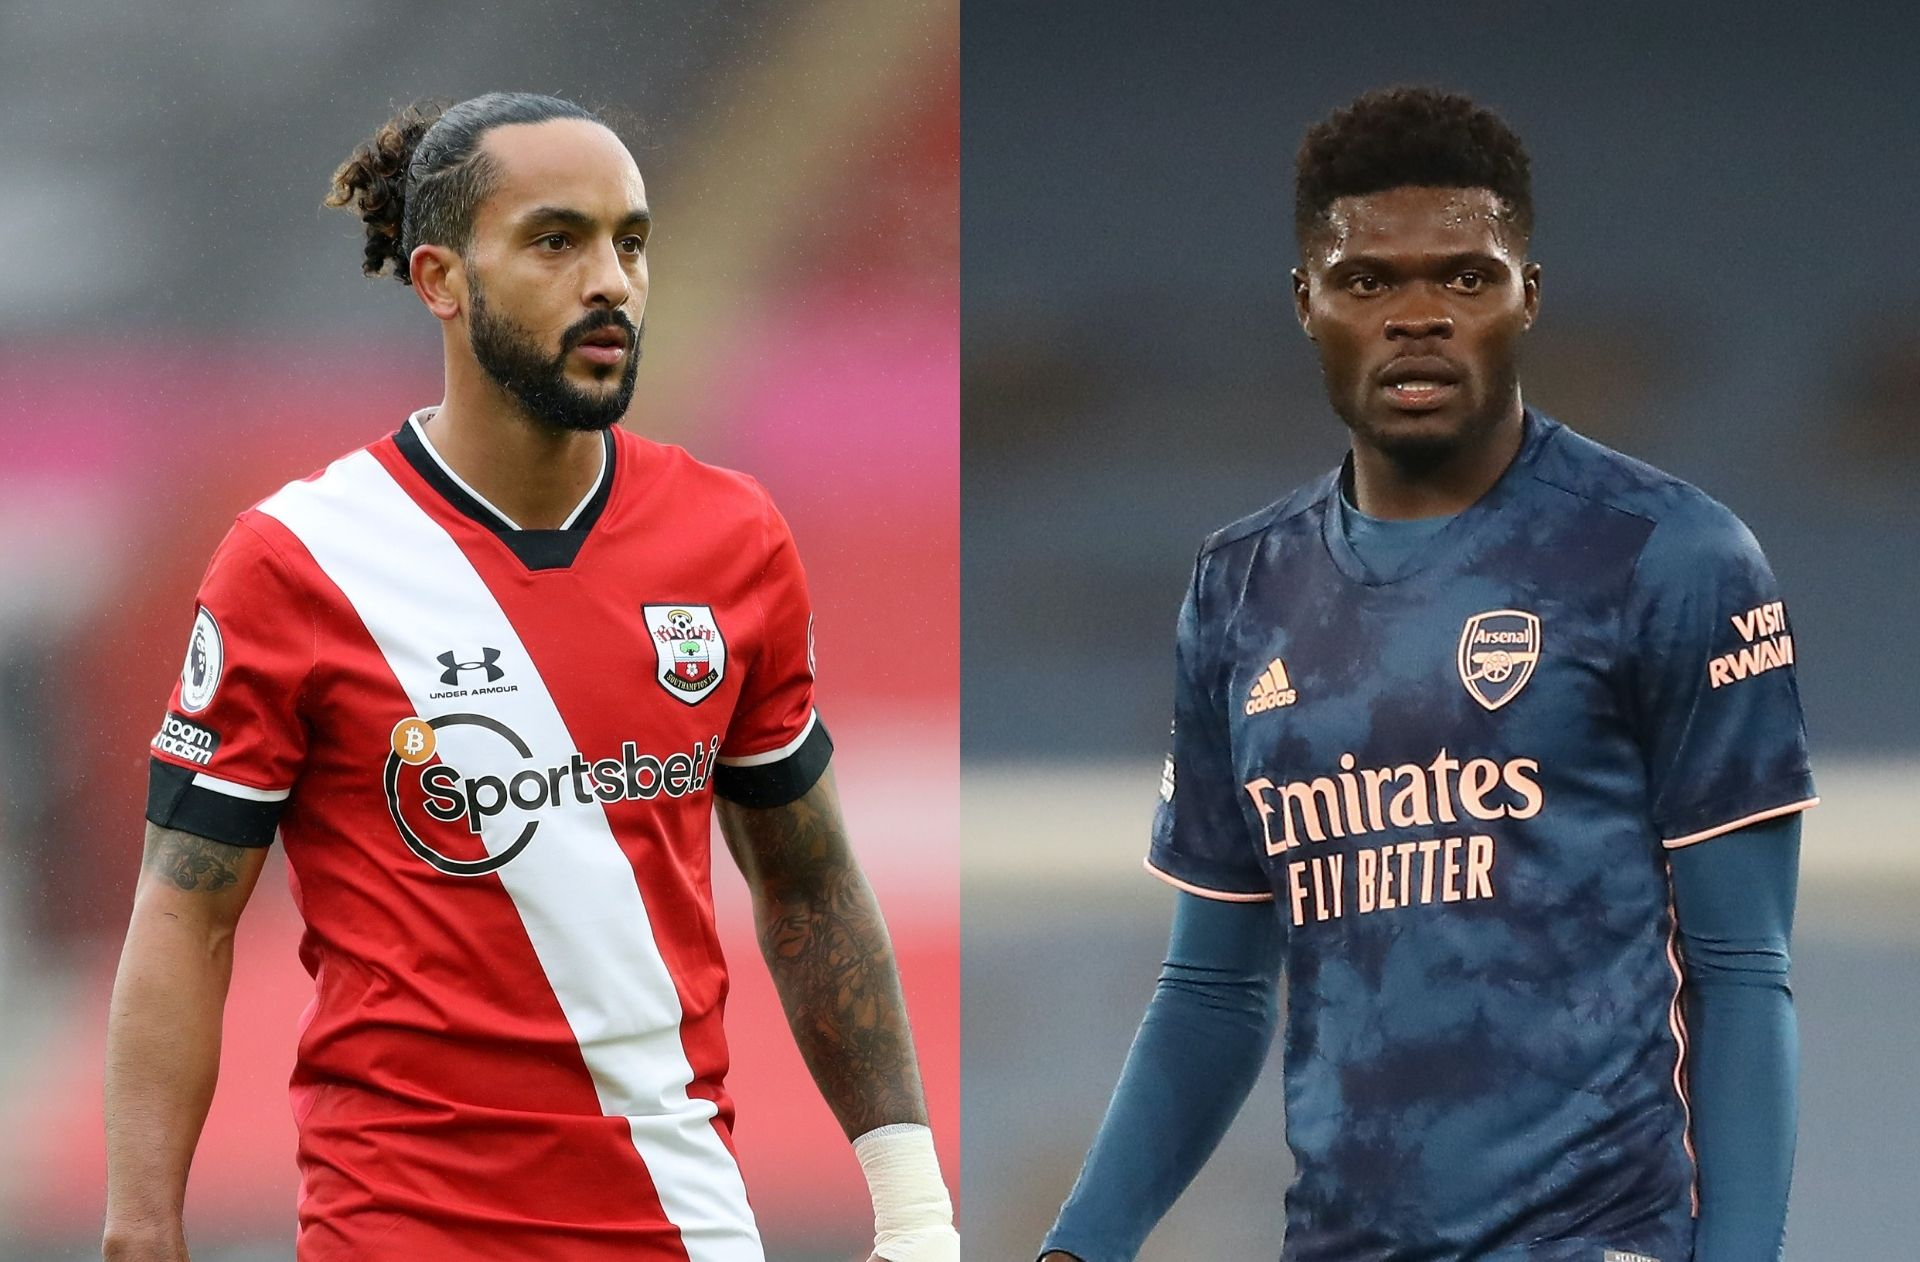 Southampton vs Arsenal: Preview, Betting Tips, Stats & Prediction